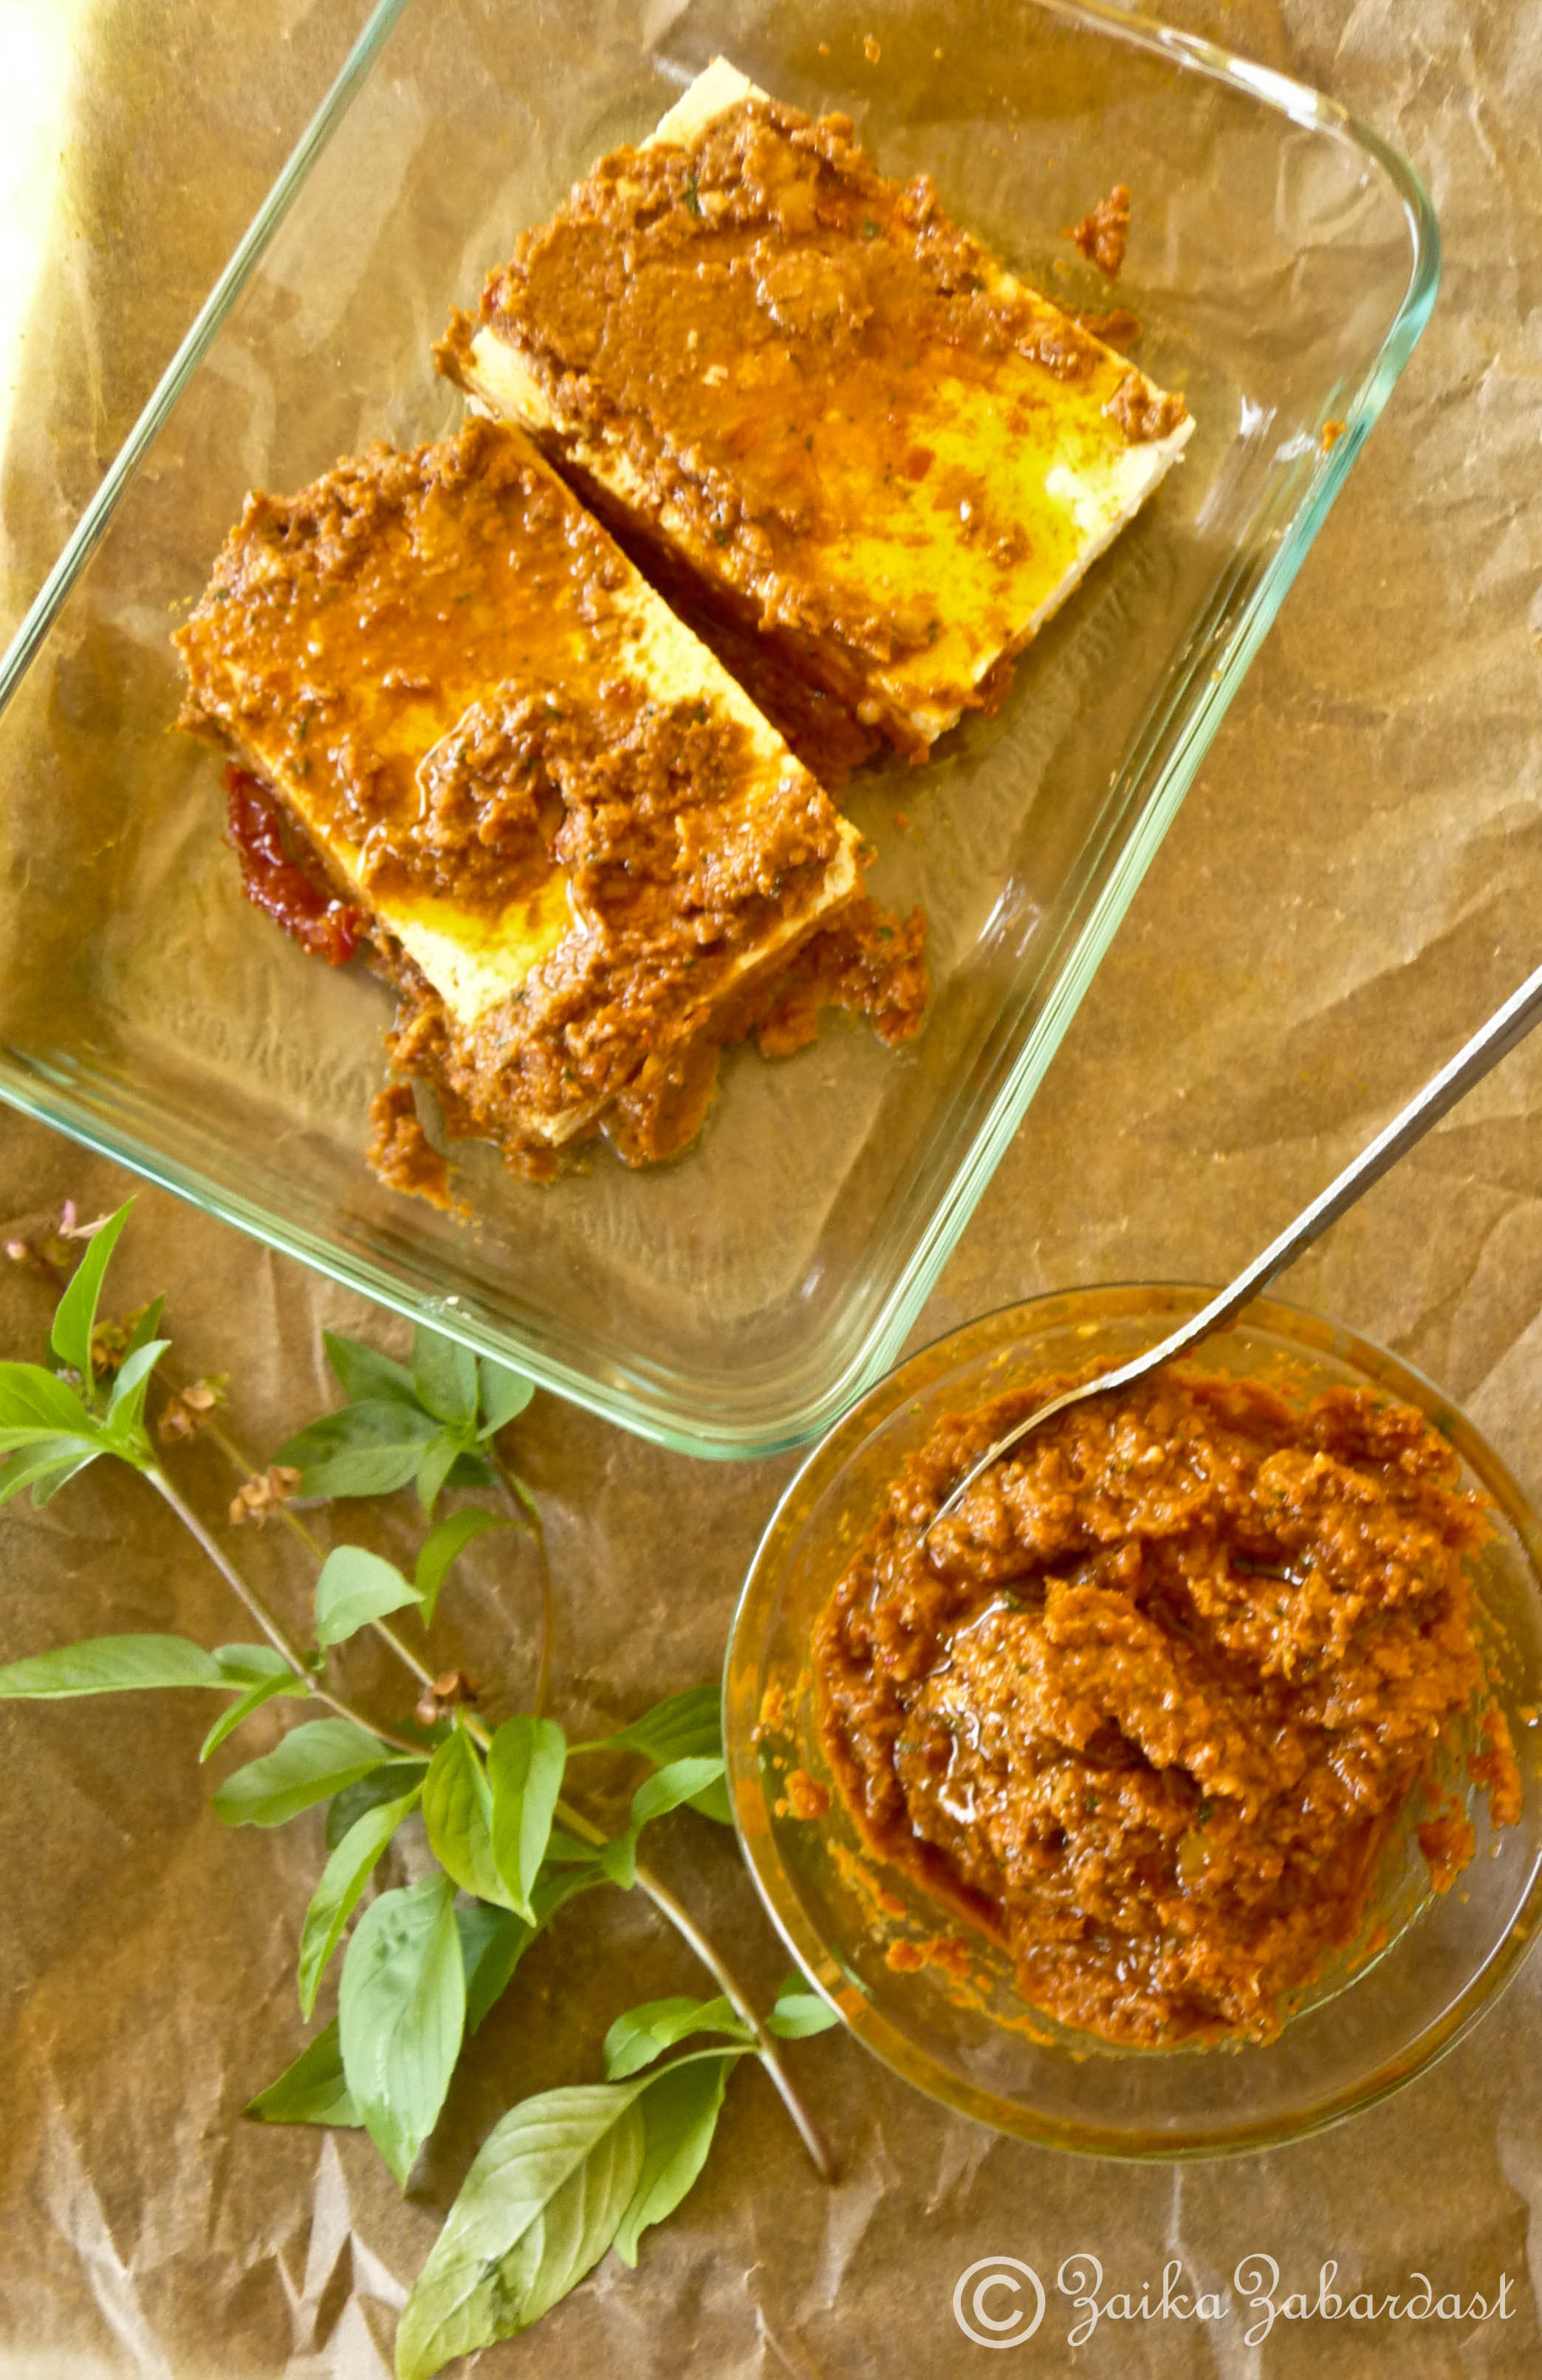 Grilled tofu and sun-dried tomato pesto grilled sandwich.